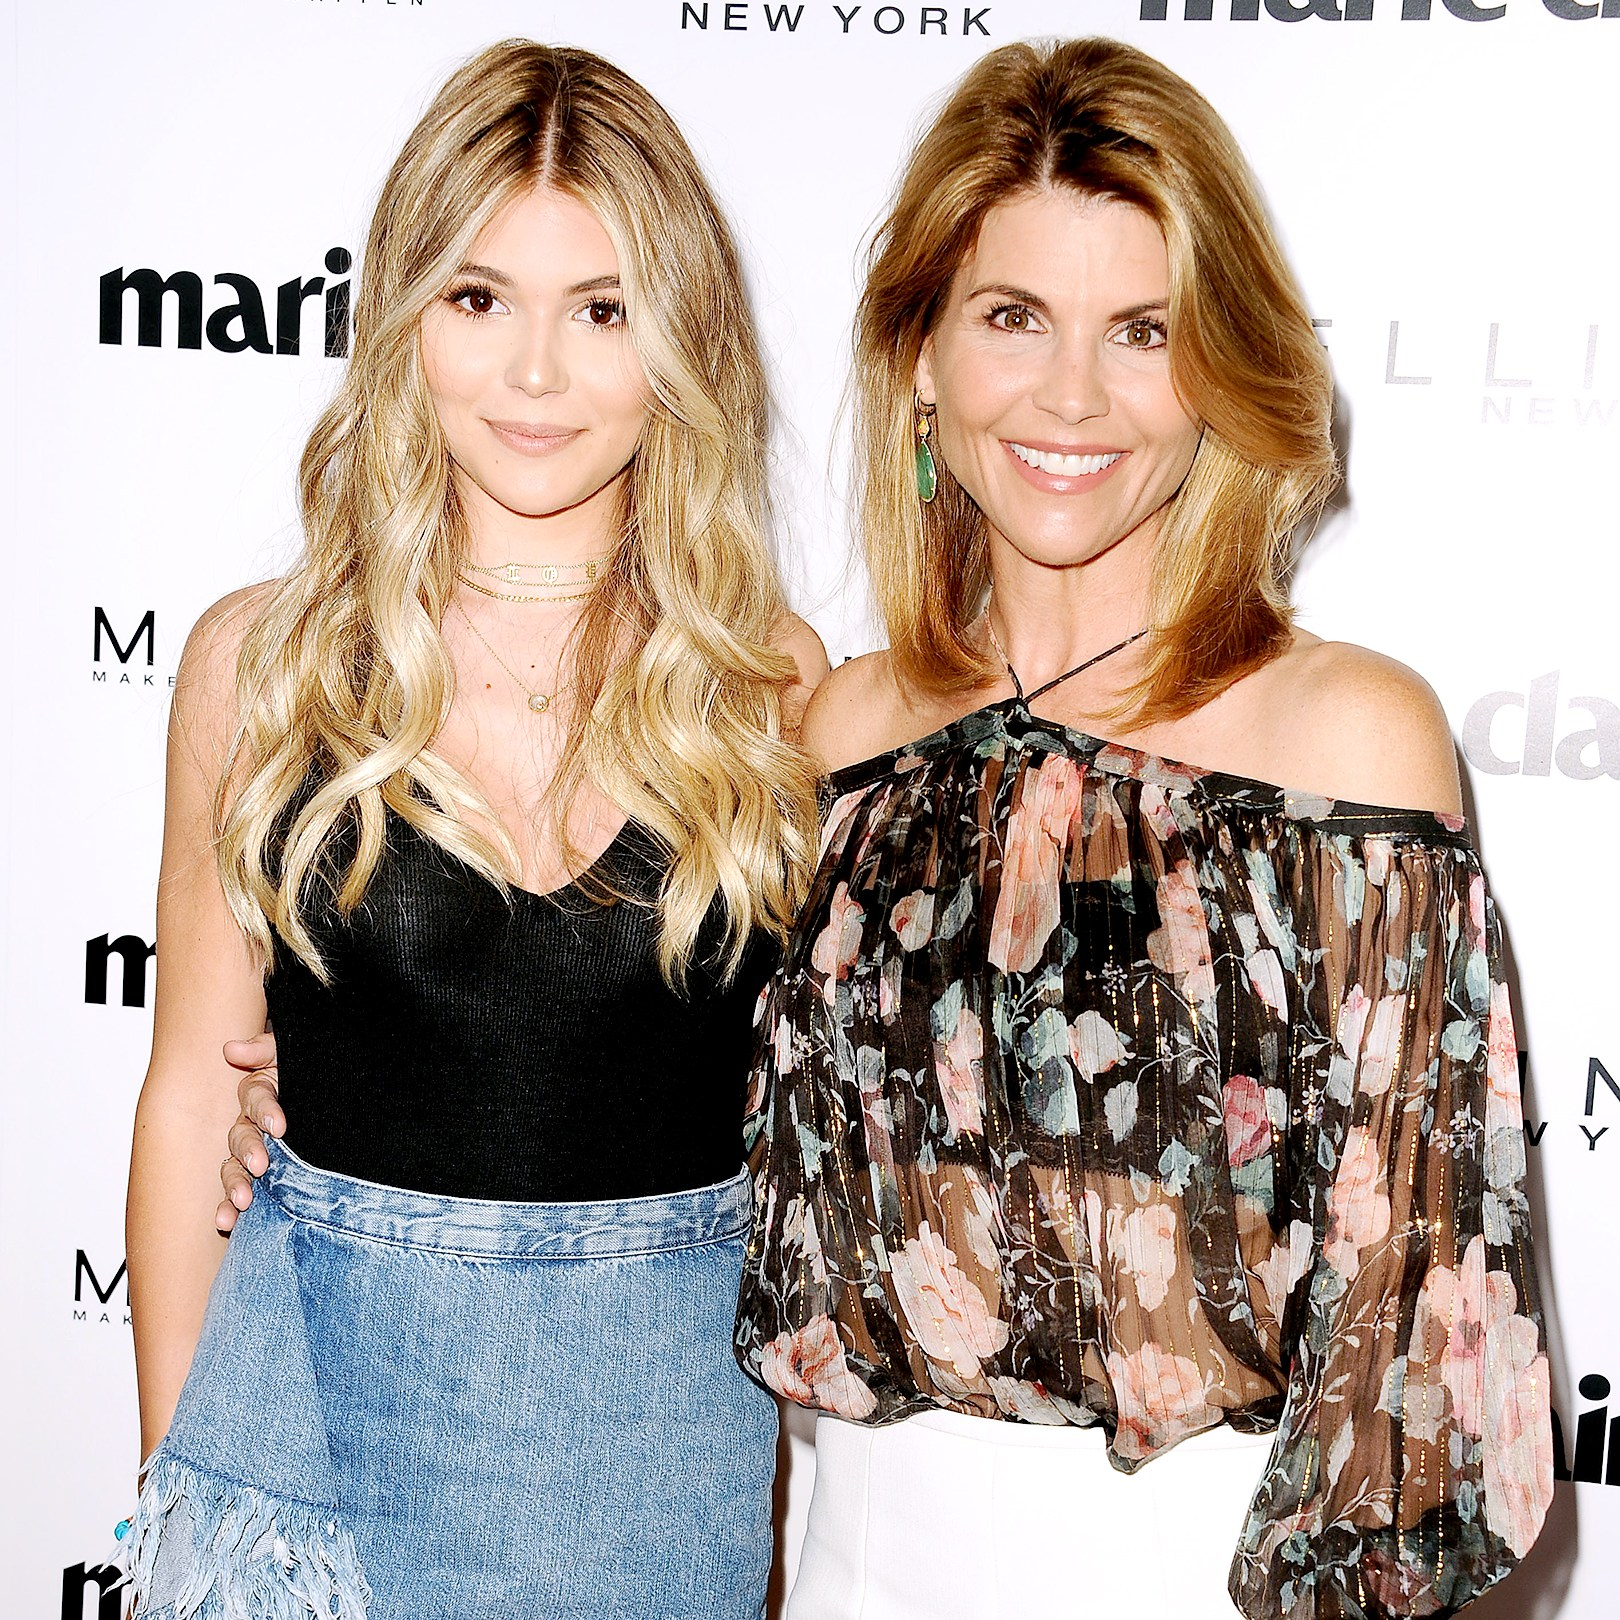 Lori-Loughlin's-Daughter-Olivia-Jade-Allegedly-Didn't-Fill-Out-Her-Own-USC-Application